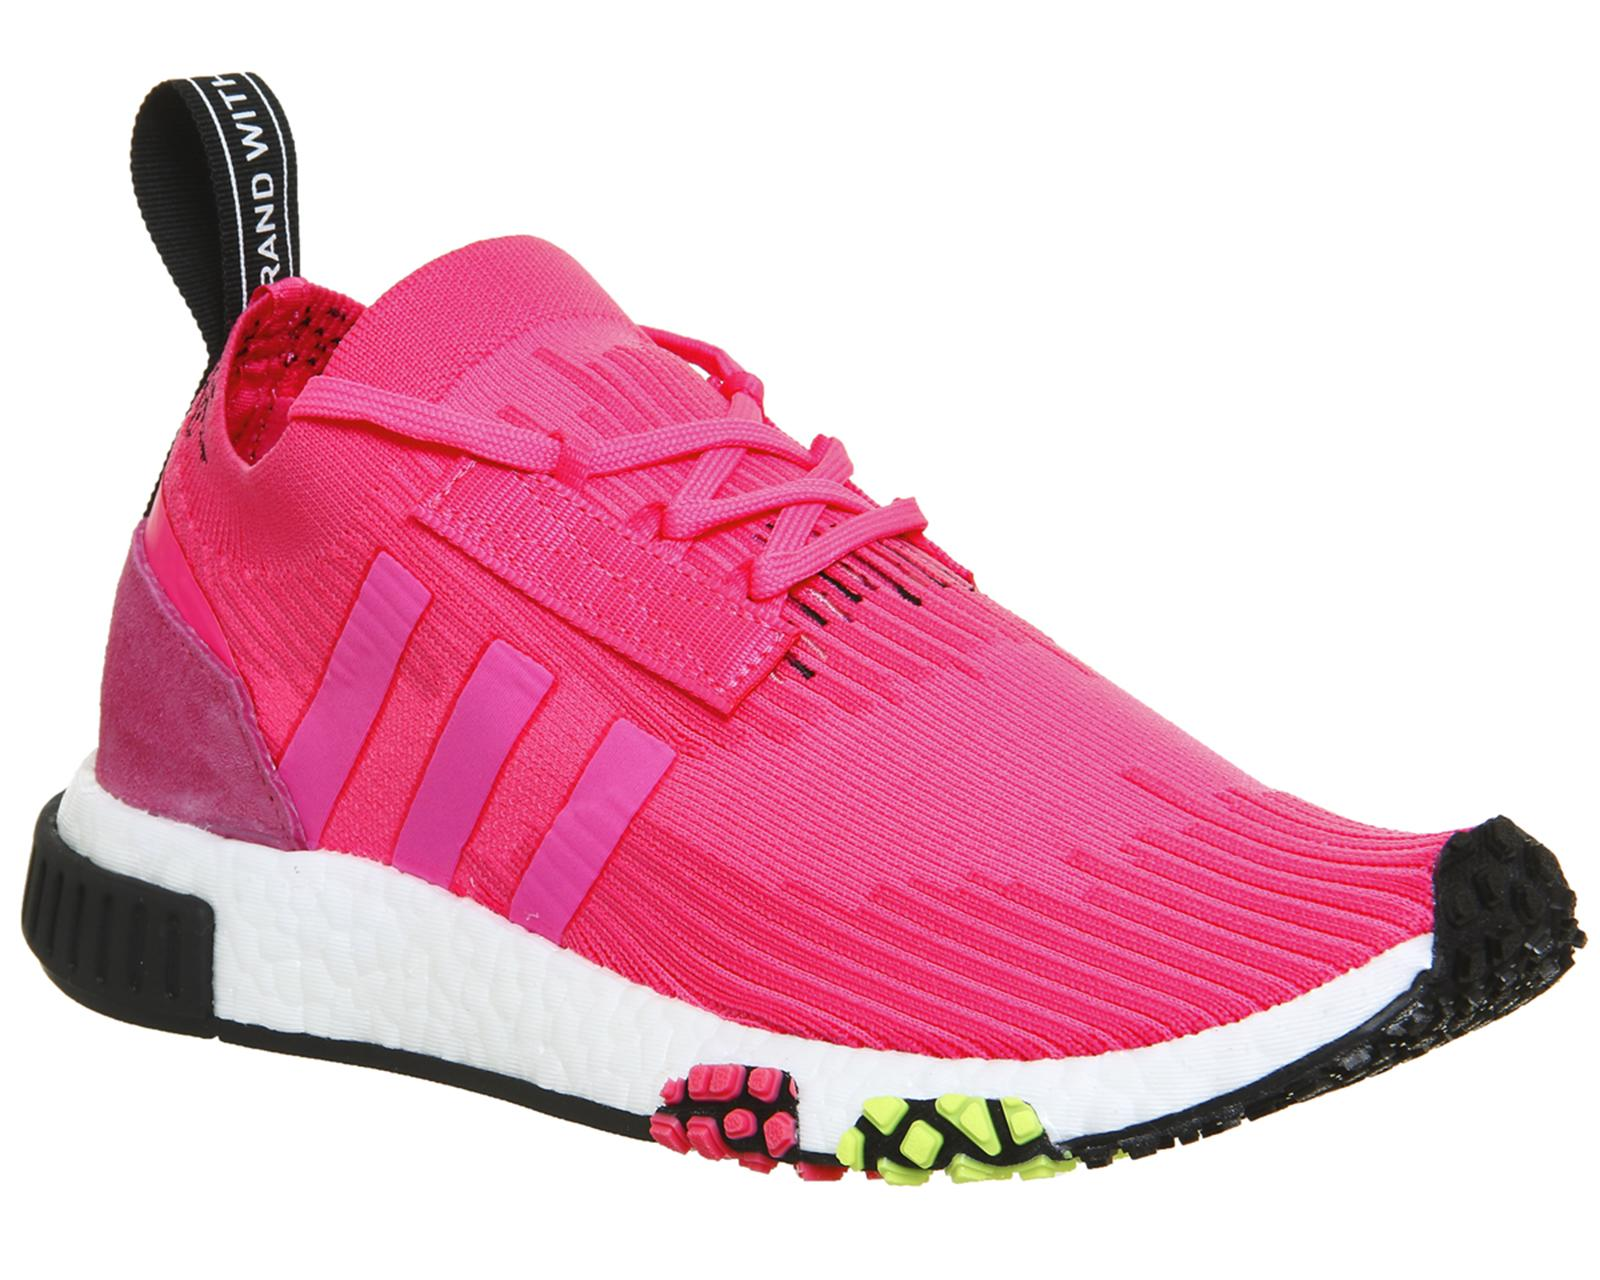 0ca442bb0a97 adidas Nmd R1 Racer Trainers in Pink - Save 52% - Lyst